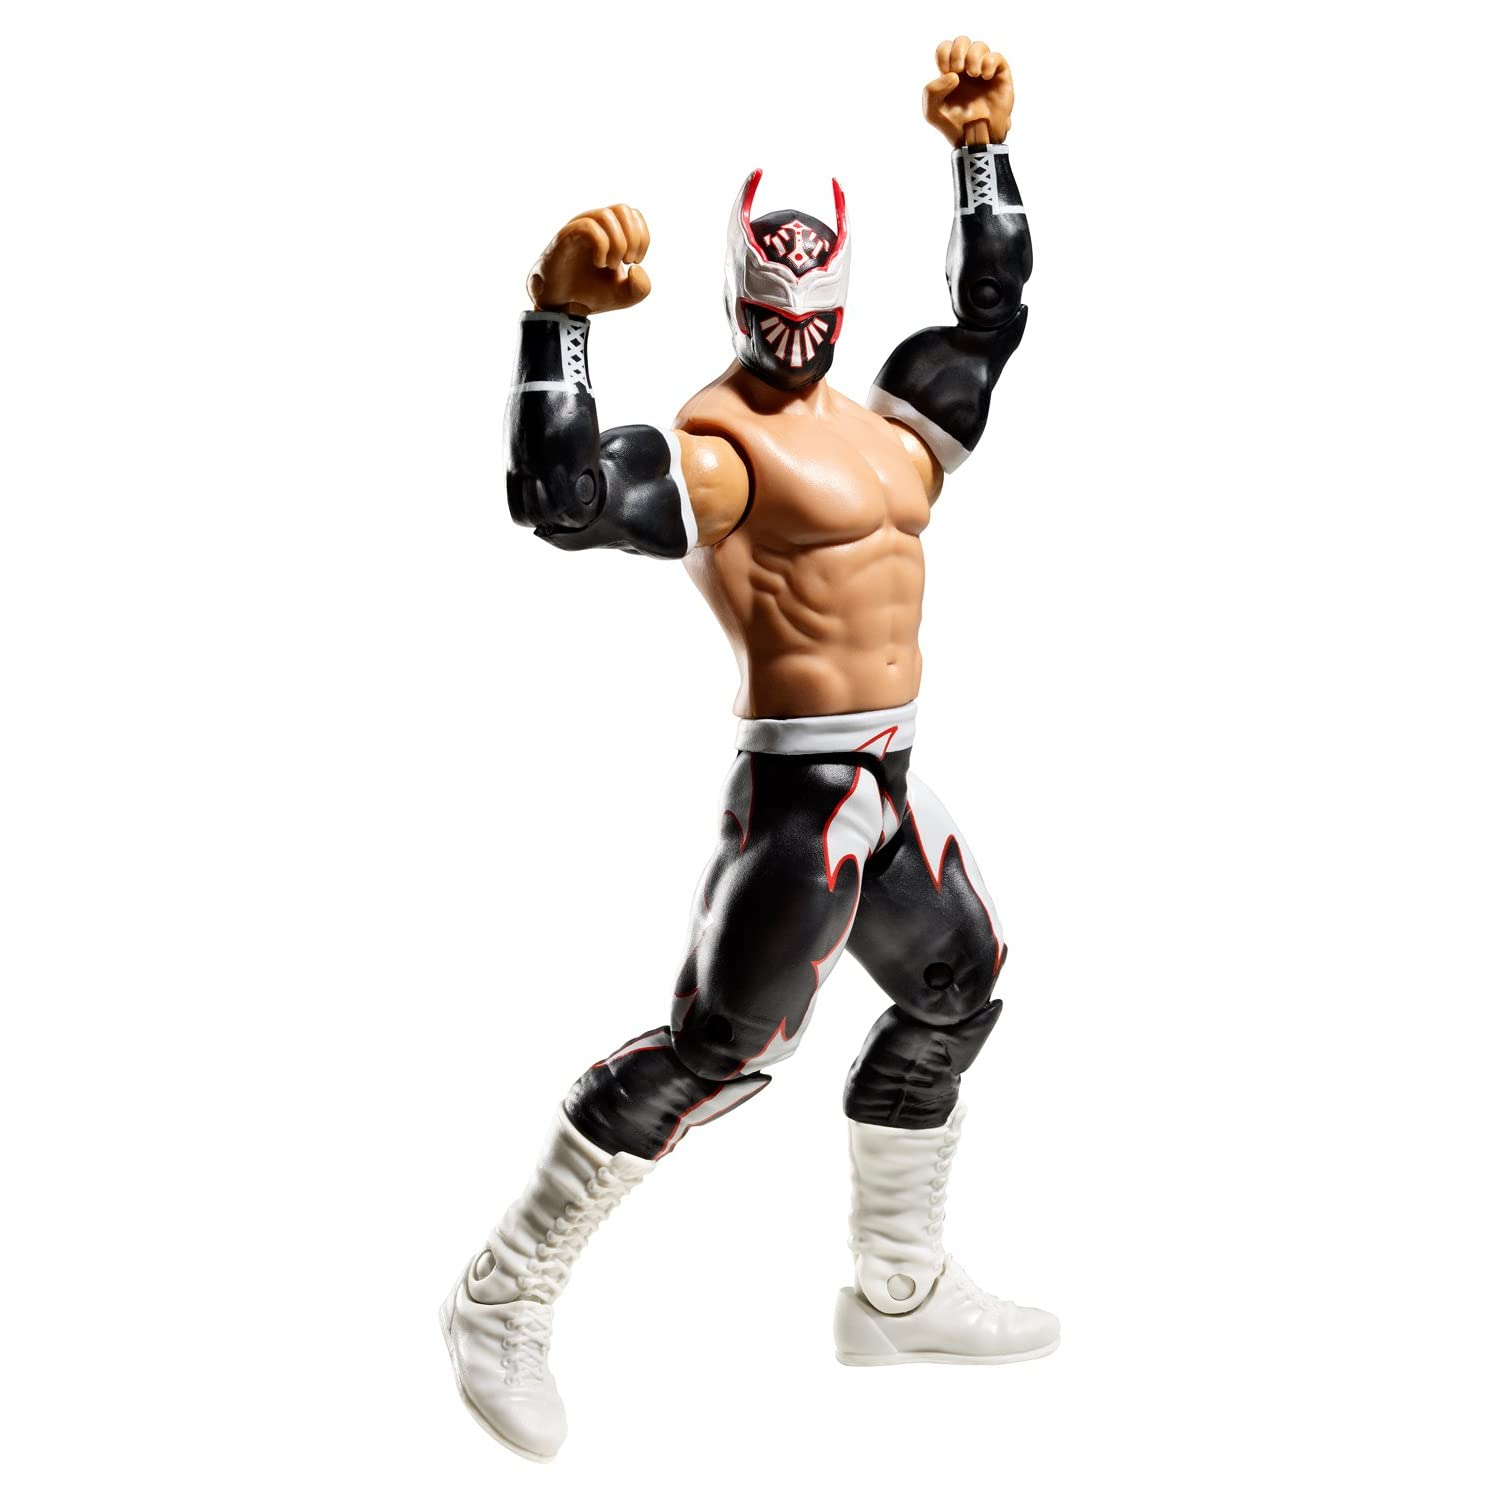 WWE Superstars Series 18 (2012) 61crHSjFvCL._AA1500_